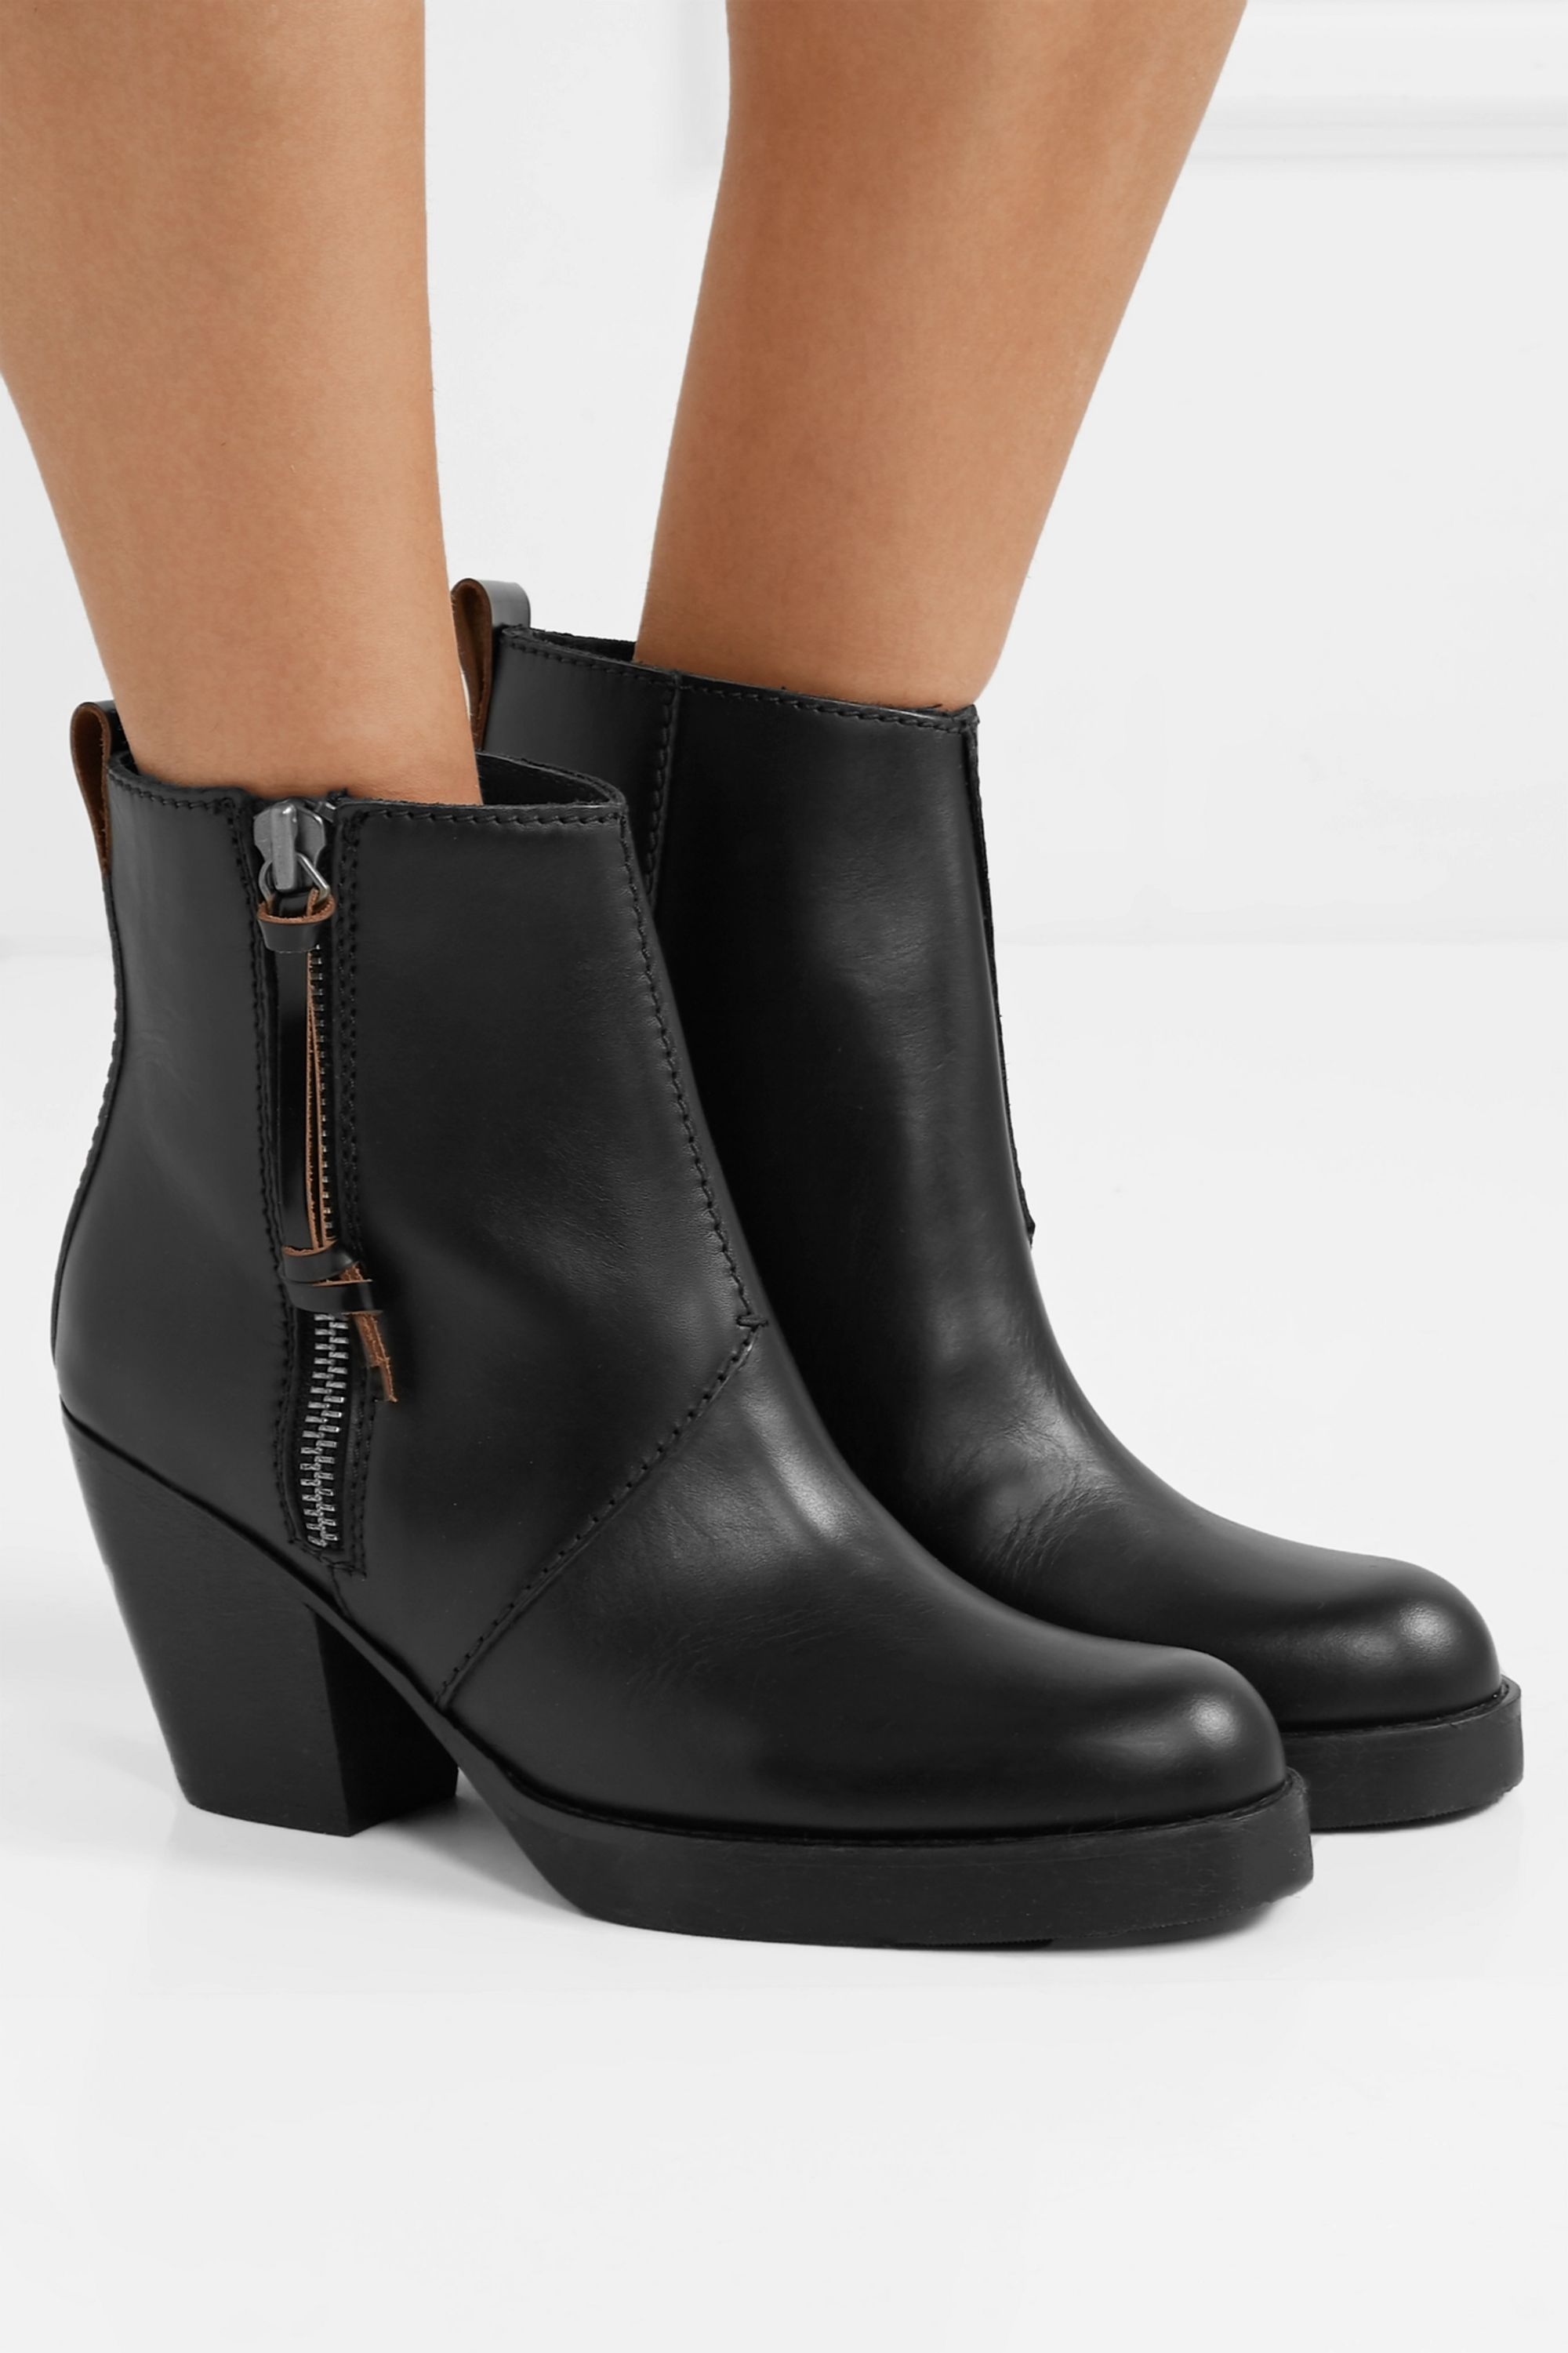 Black Pistol leather boots | Sale up to